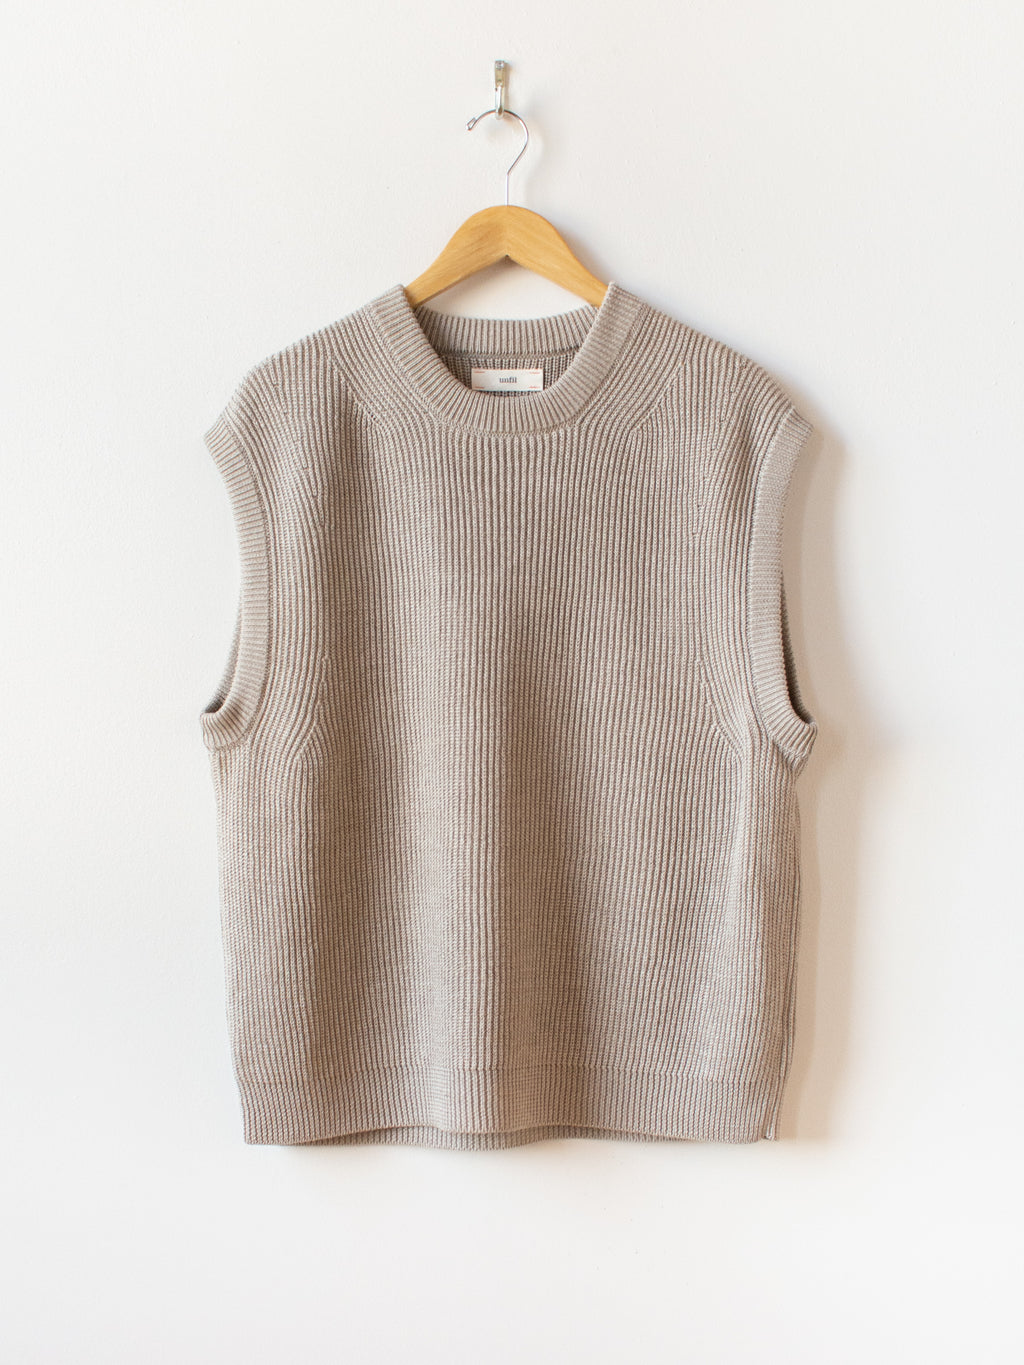 French Linen Ribbed Knit Vest - Natural